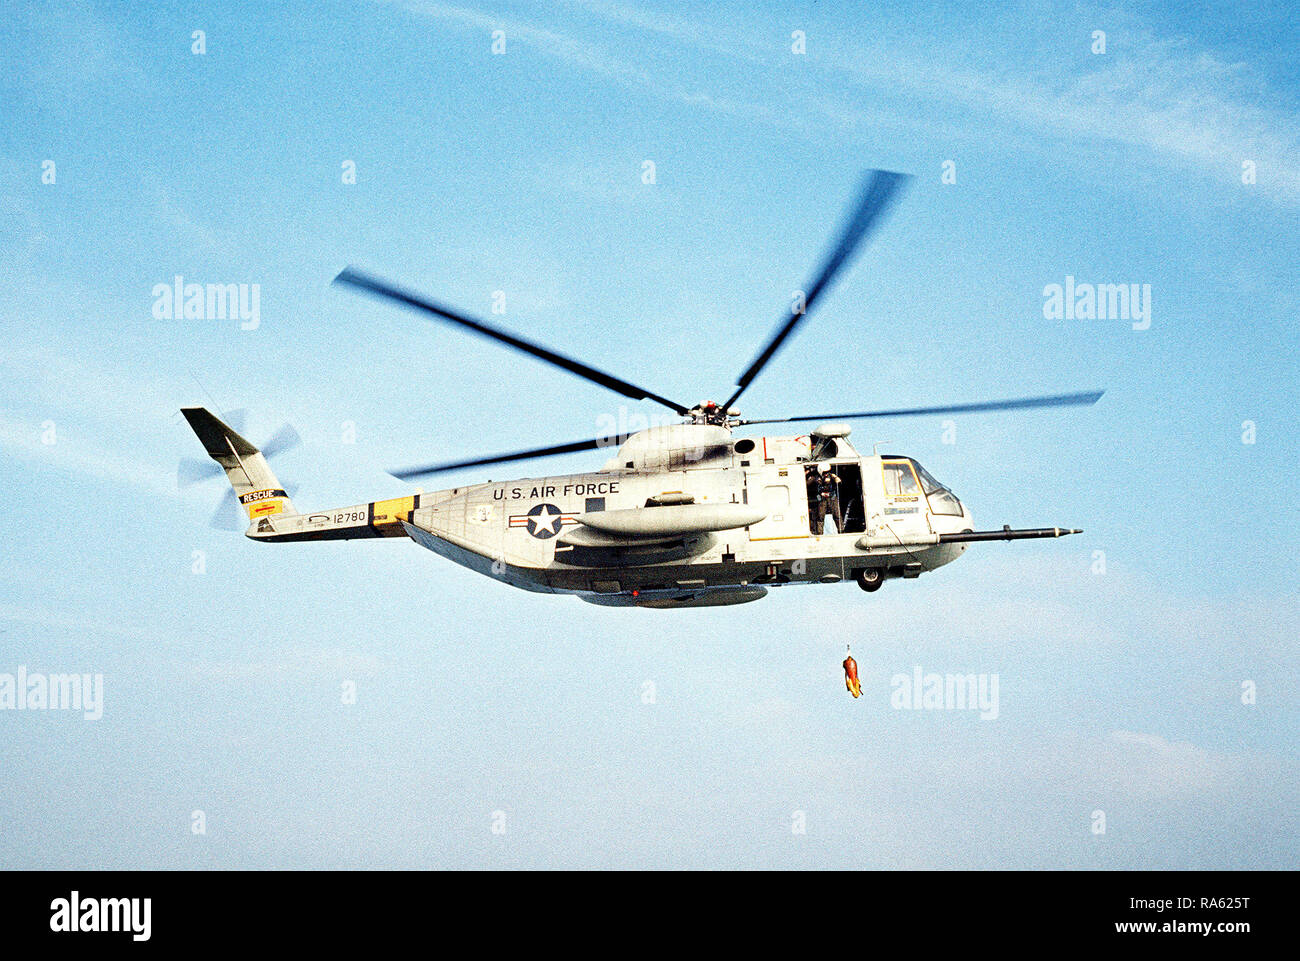 1977 - A sea-to-air right side view of an HH-3 Jolly Green Giant helicopter lowering a rescue line during a practice rescue mission off the coast of California.  The helicopter is assigned to the 129th Aerospace Rescue and Recovery Group of the Air National Guard. - Stock Image